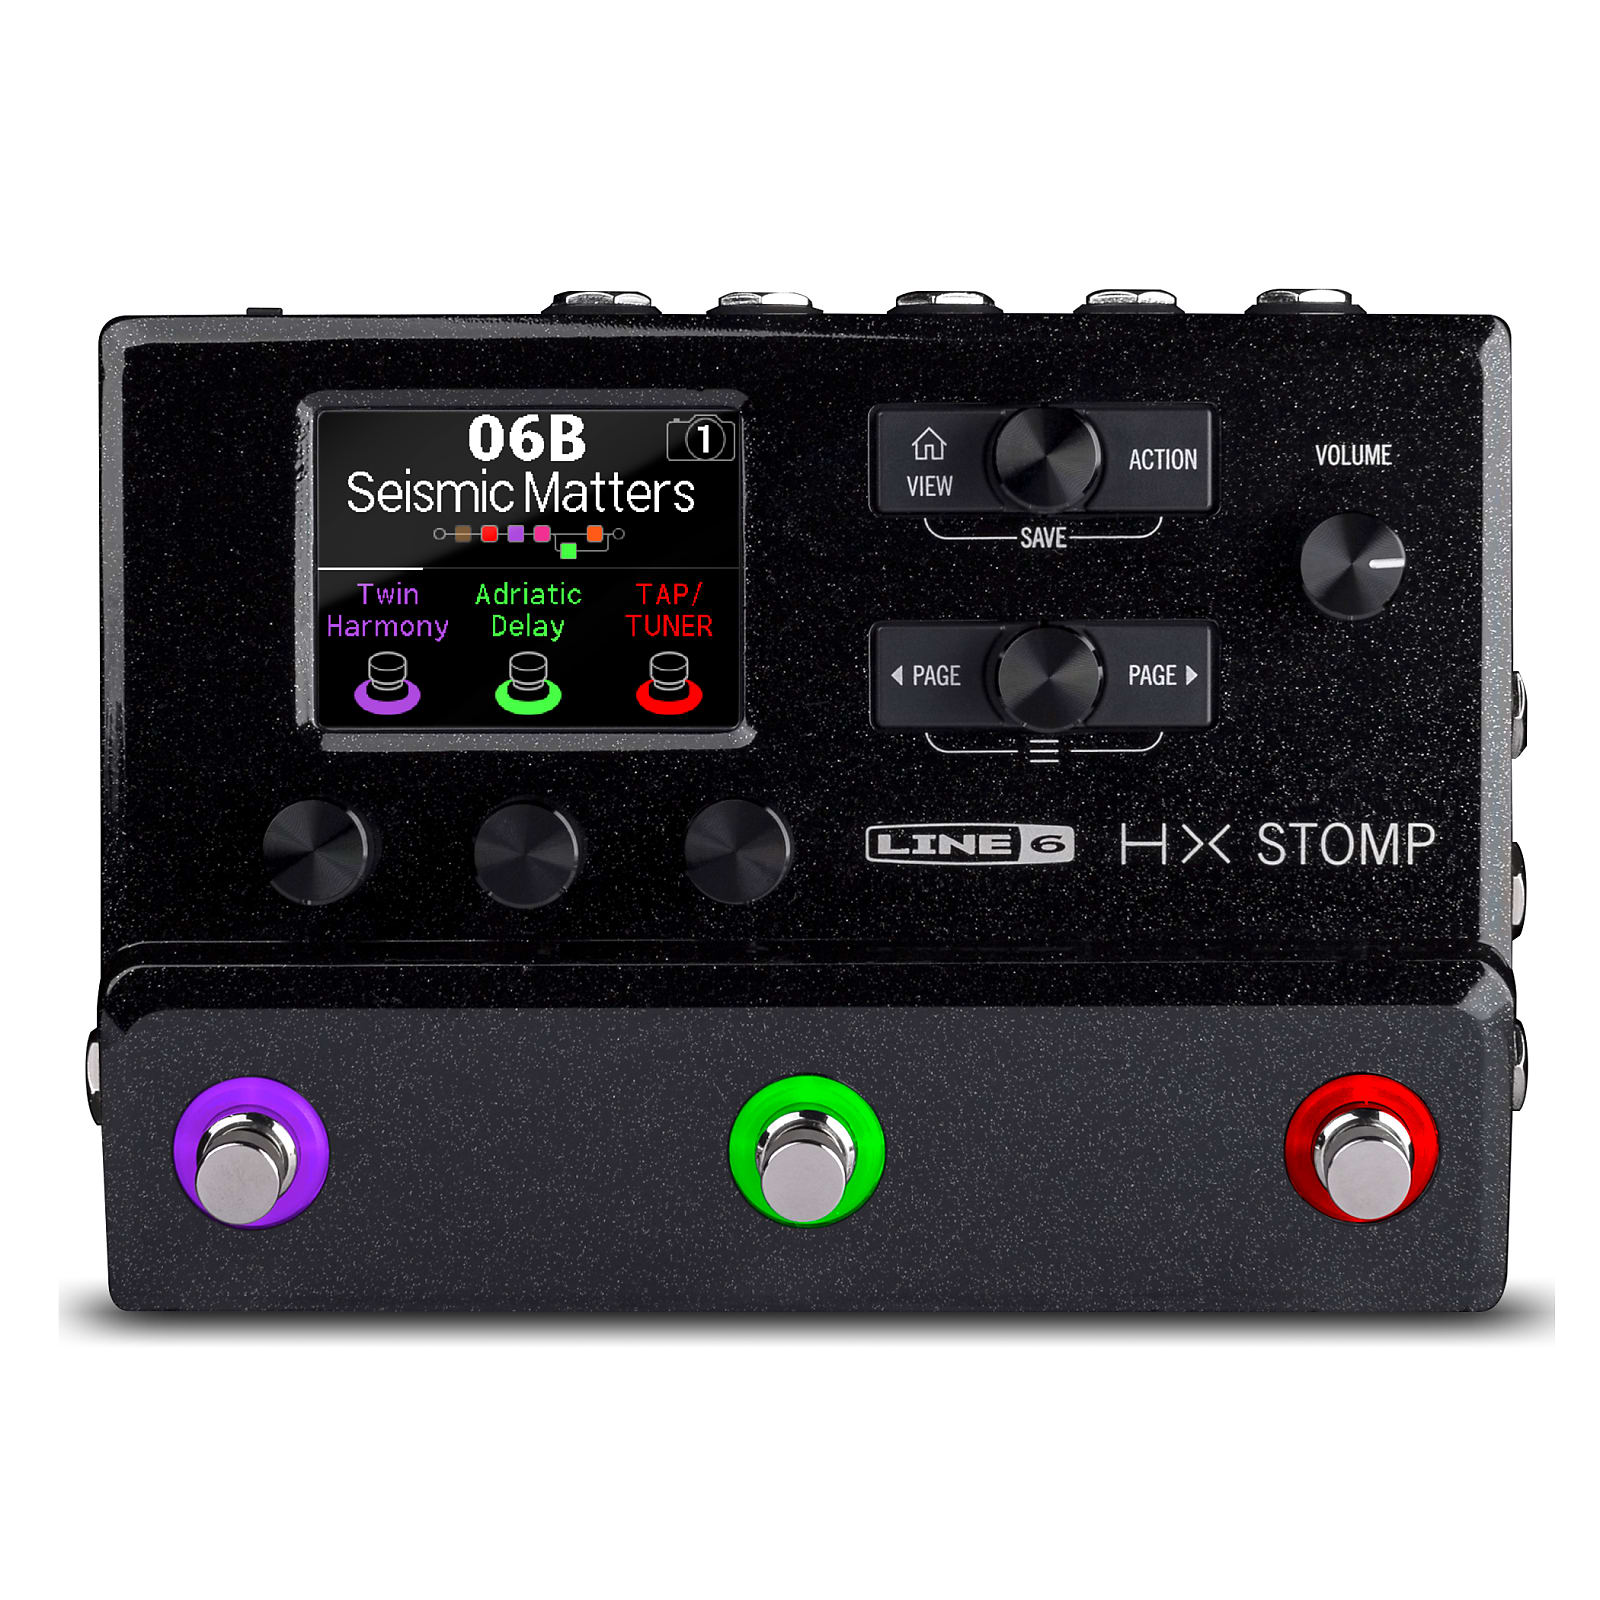 Line 6 Hx Stomp Faq True Byp Looper Volume Led Dpdt Switch Wiring Diagram Https Line6com Support Topic 36246